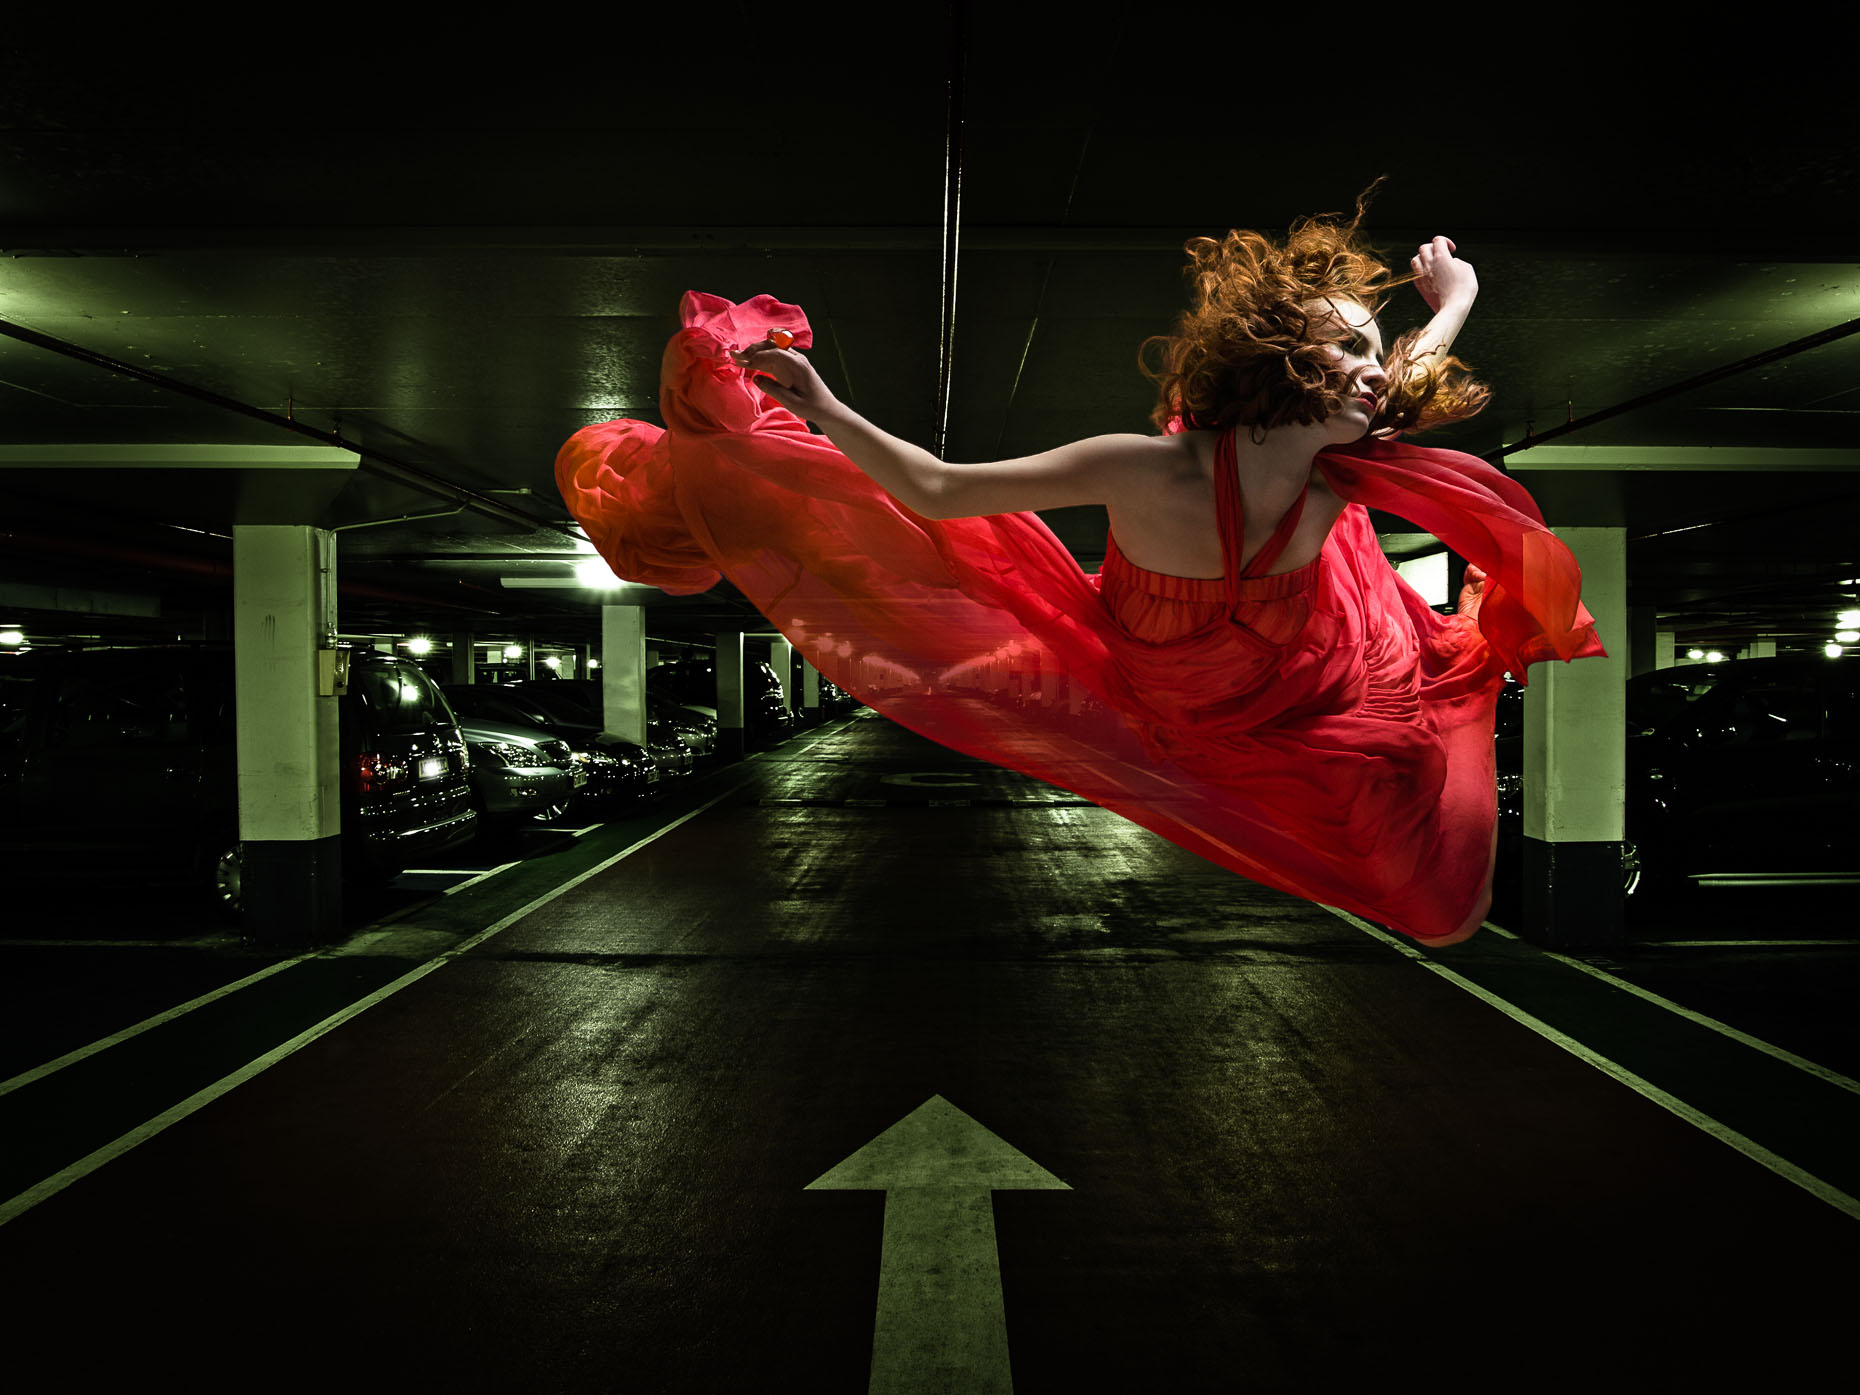 fashion-photograph-of-girl-floating-red-dress